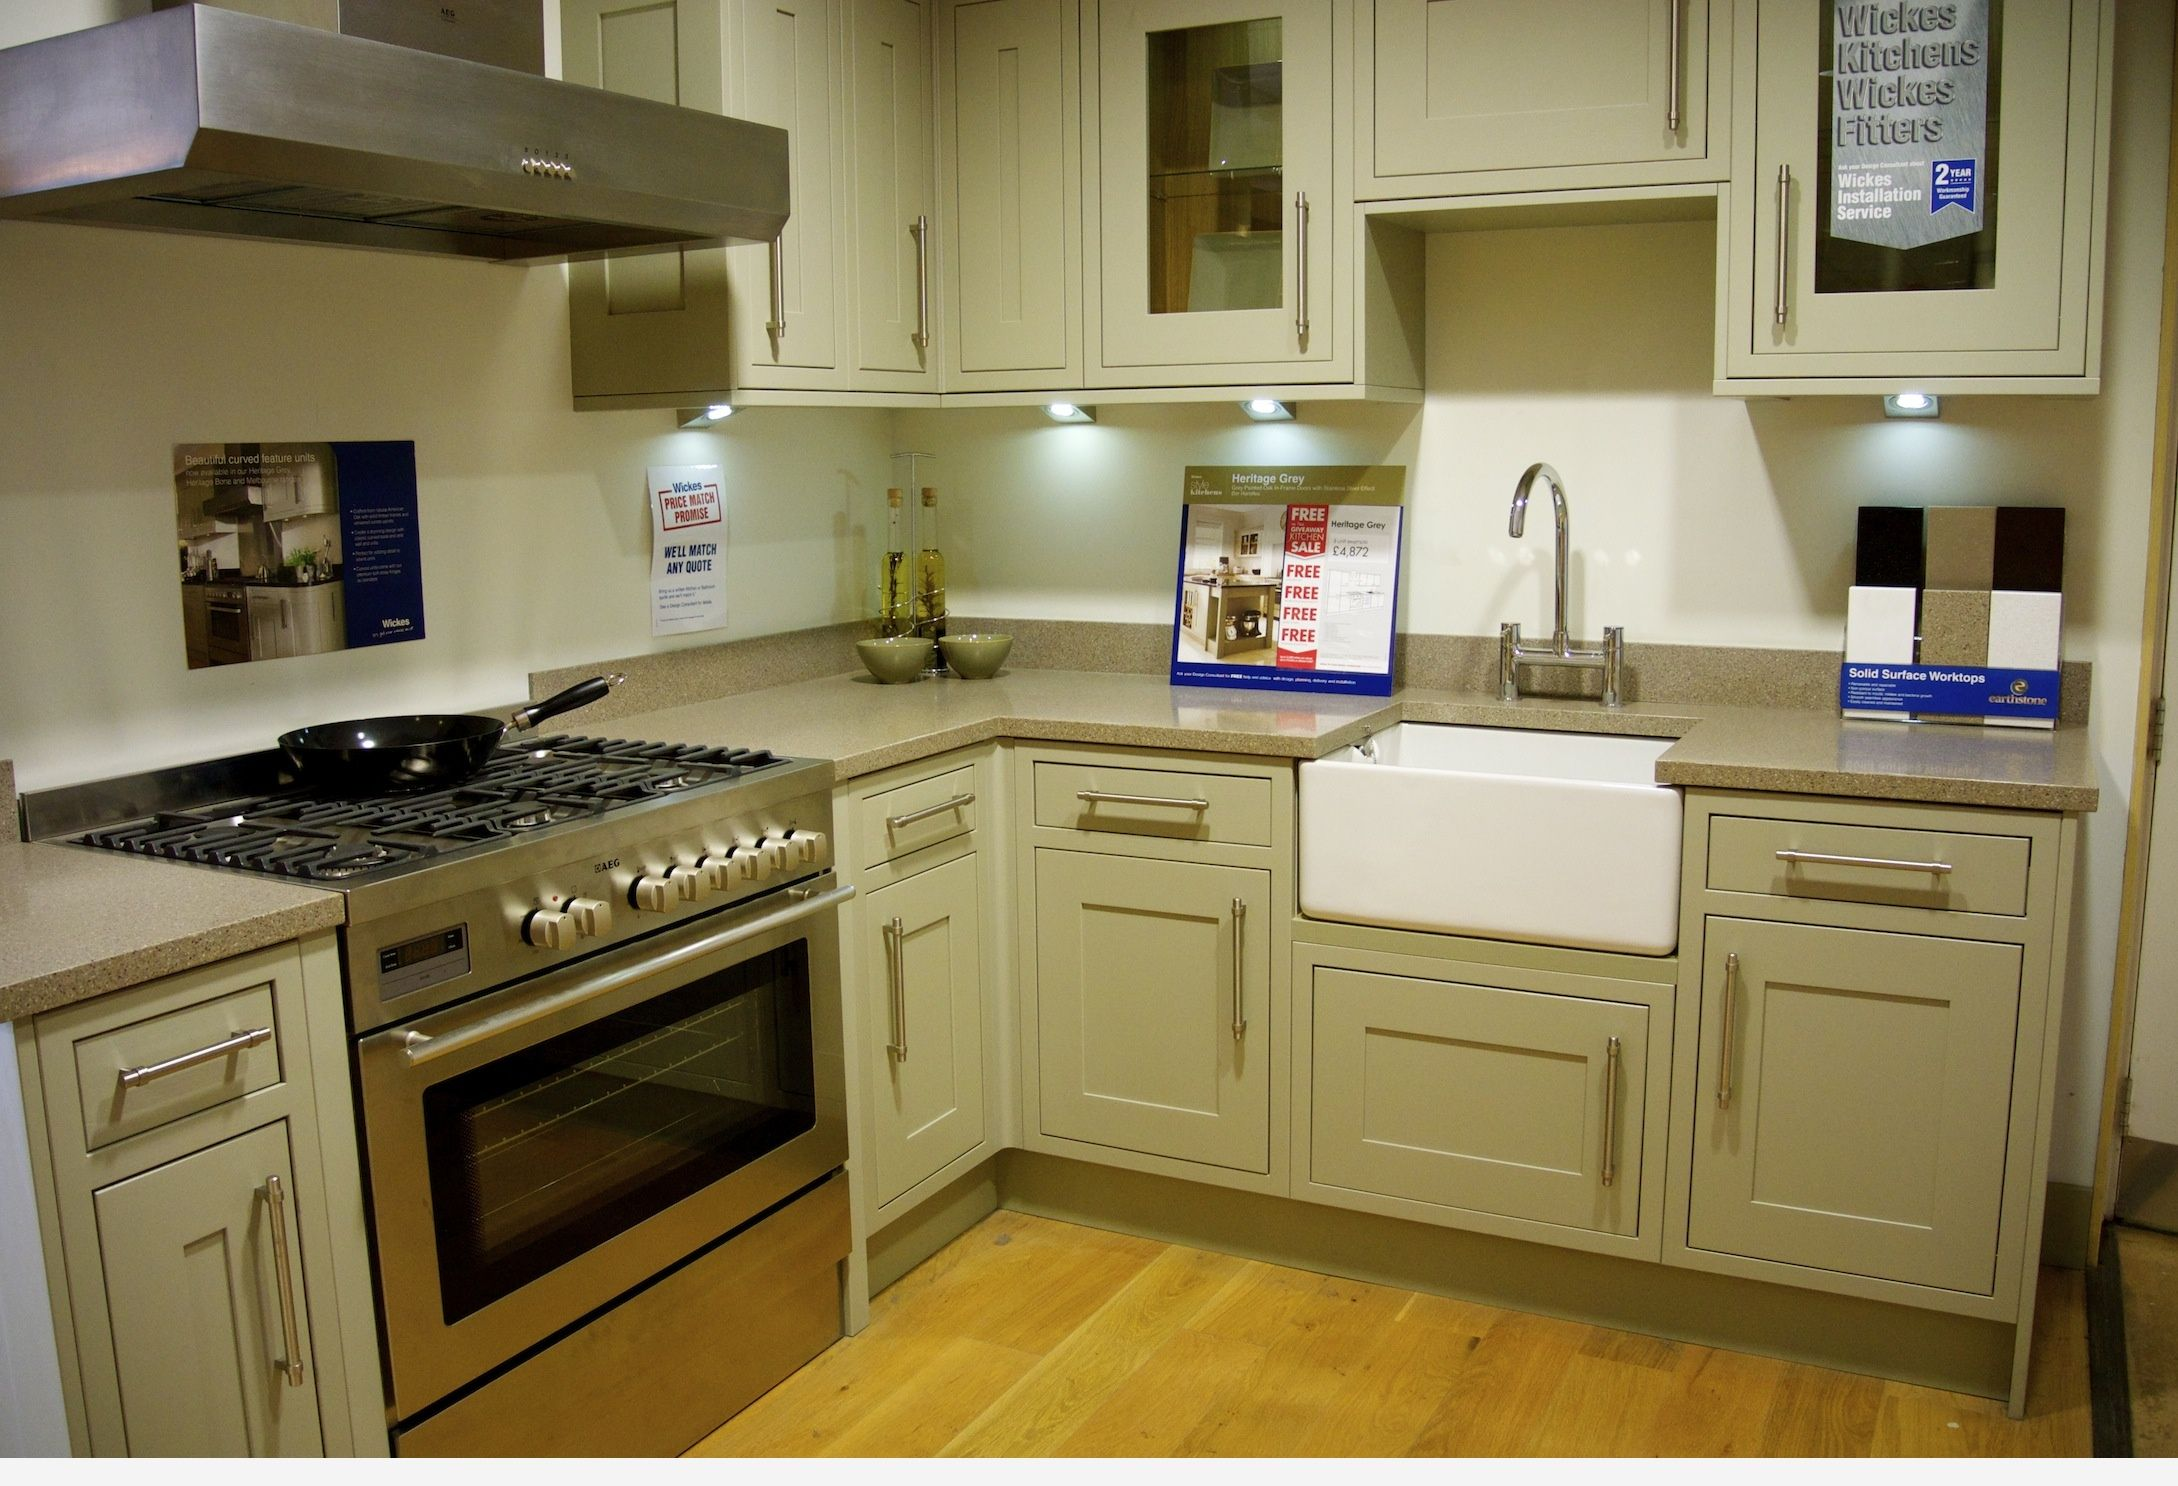 kitchen wallpaper wickes - http://desktopwallpaper.info/kitchen ...